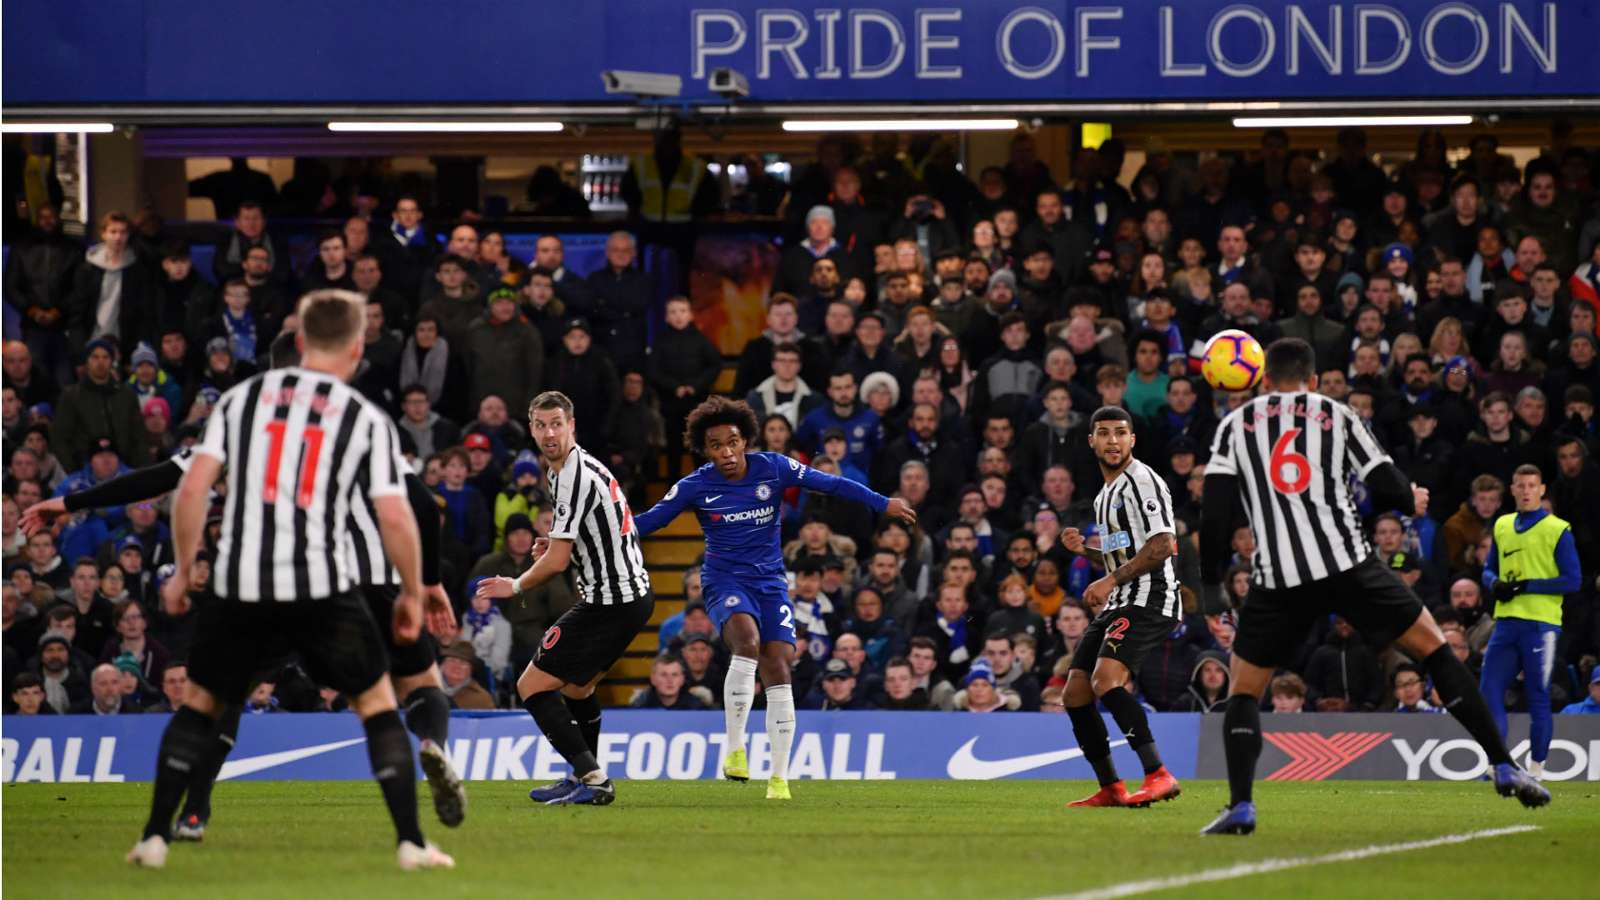 willian cropped mgcvmn8u83dv173vo9y4702ds - Watch: Chelsea vs Newcastle United 2-1: Premier League Highlights [Video]